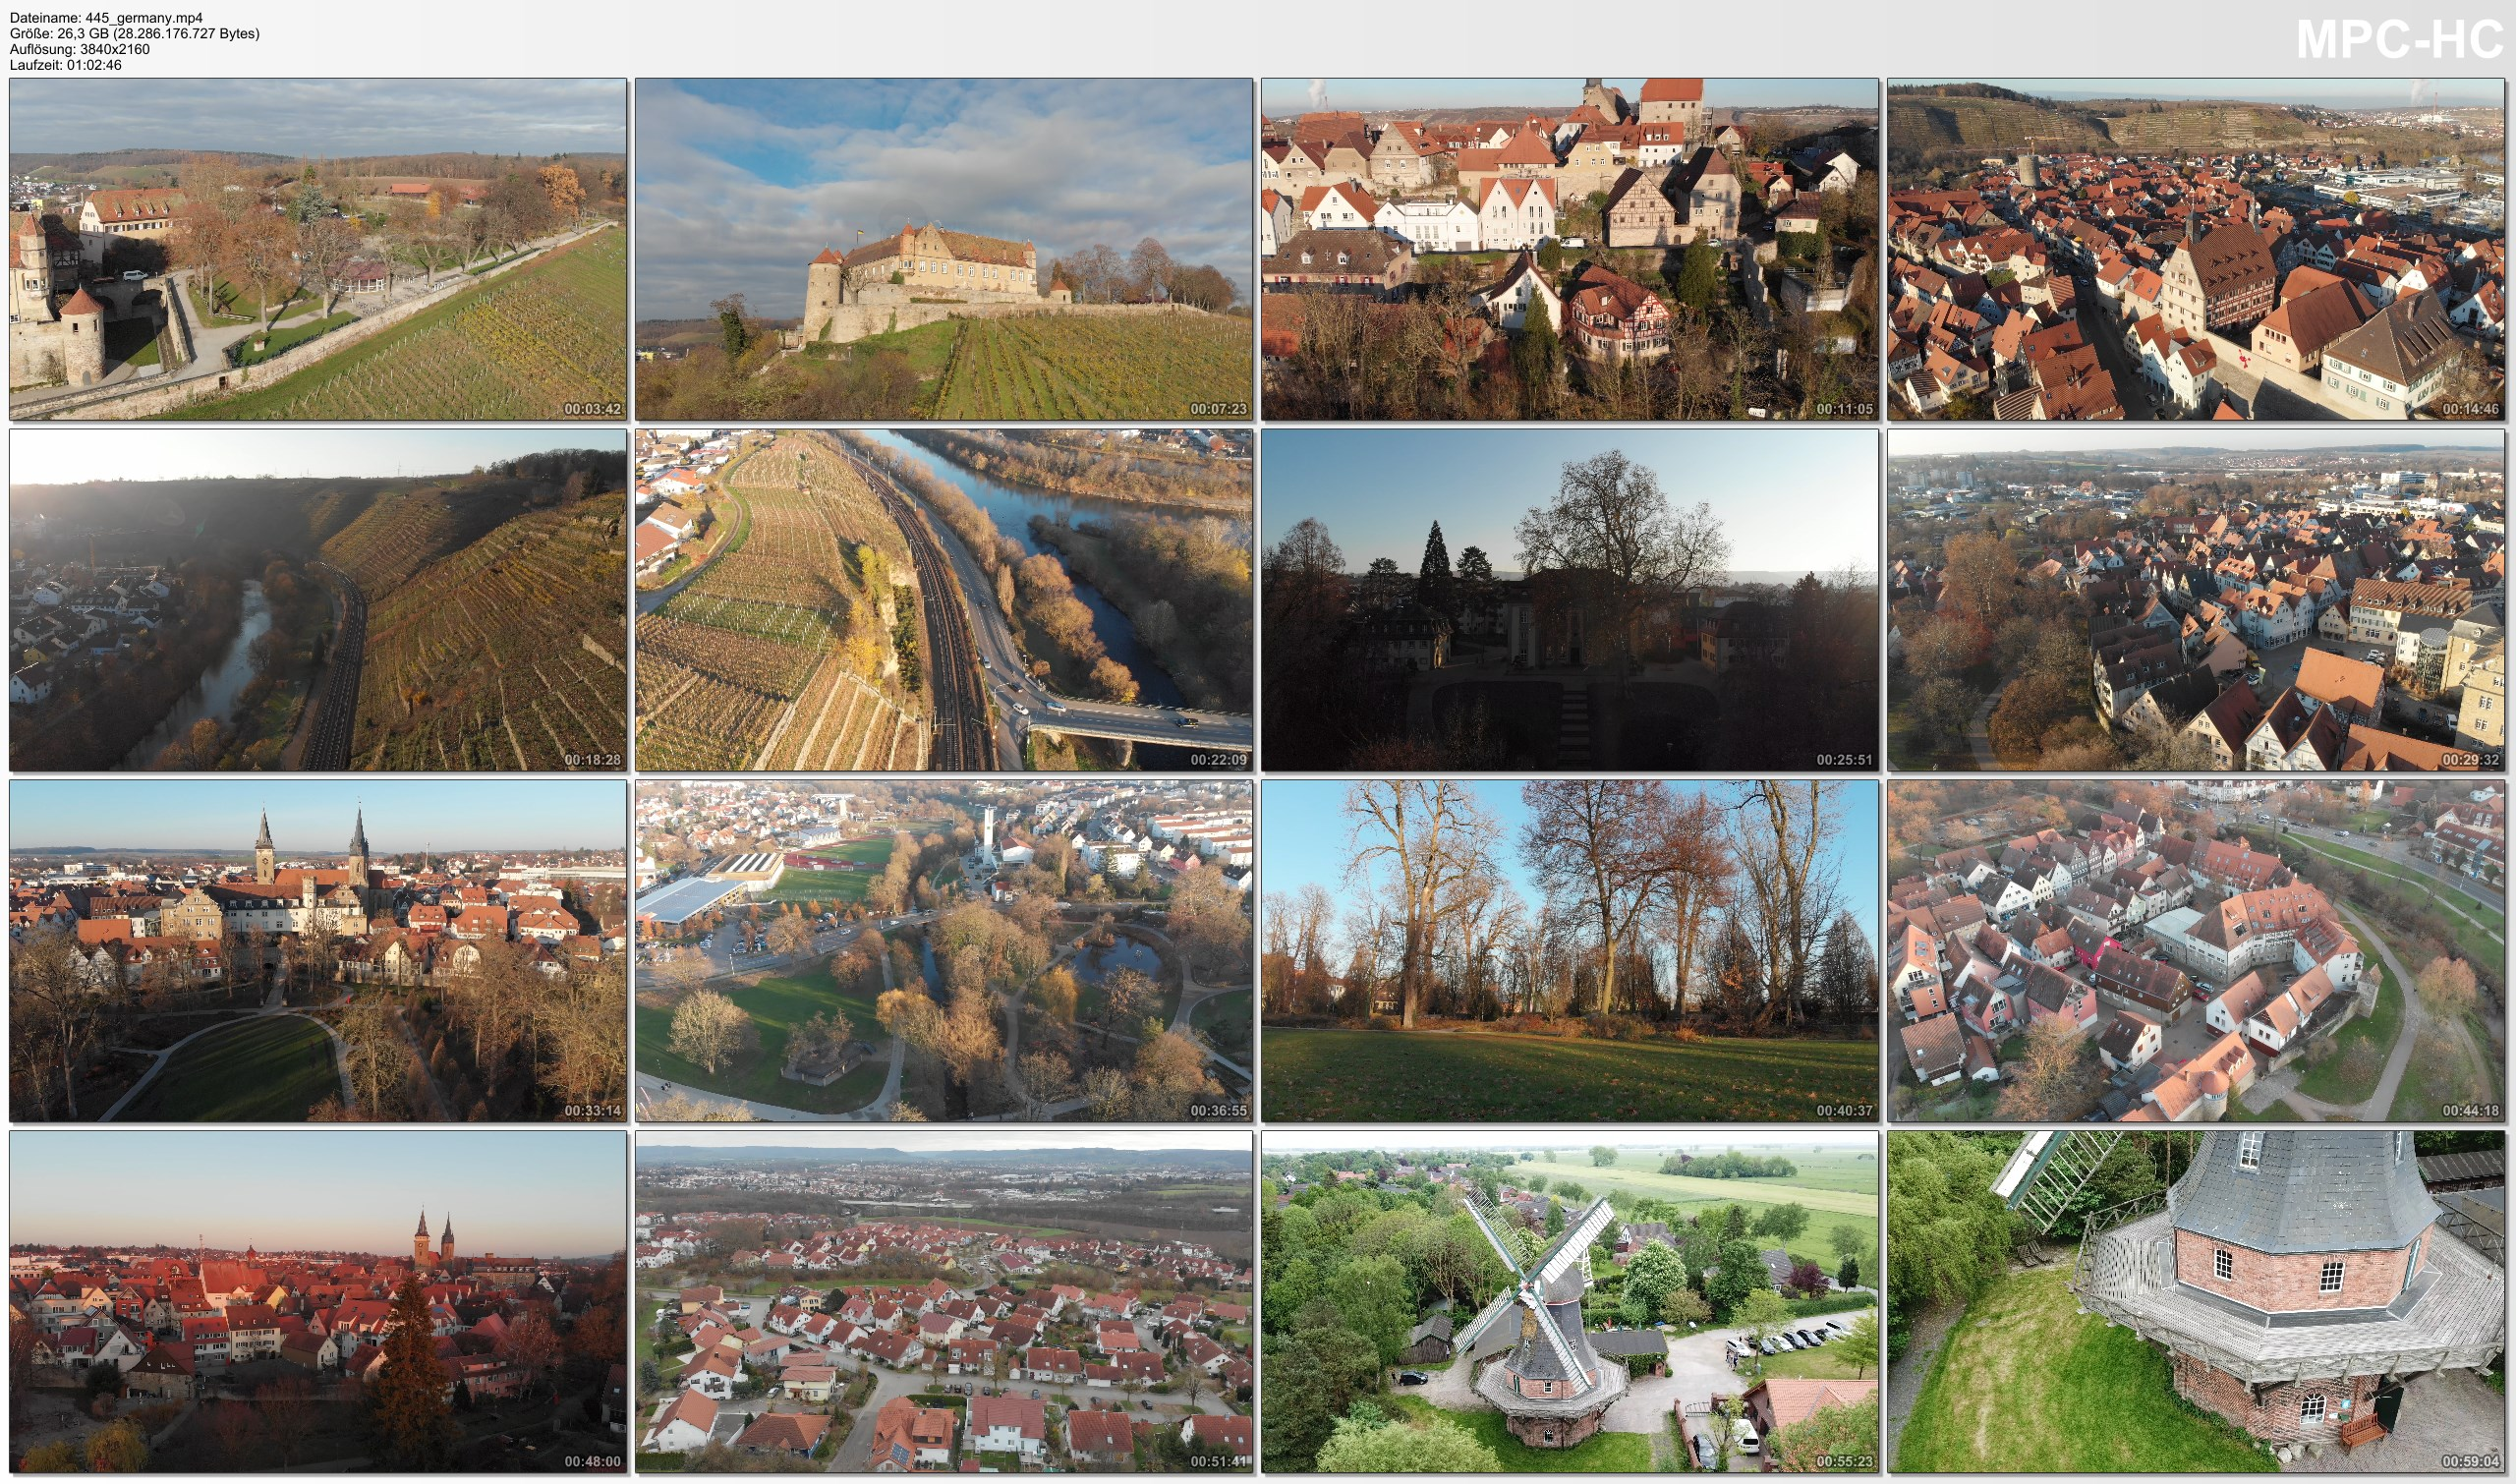 Drone Pictures from Video 【4K】Drone RAW Footage   This is GERMANY 2020   Baden-Wuerttemberg   Oehringen   UltraHD Stock Video